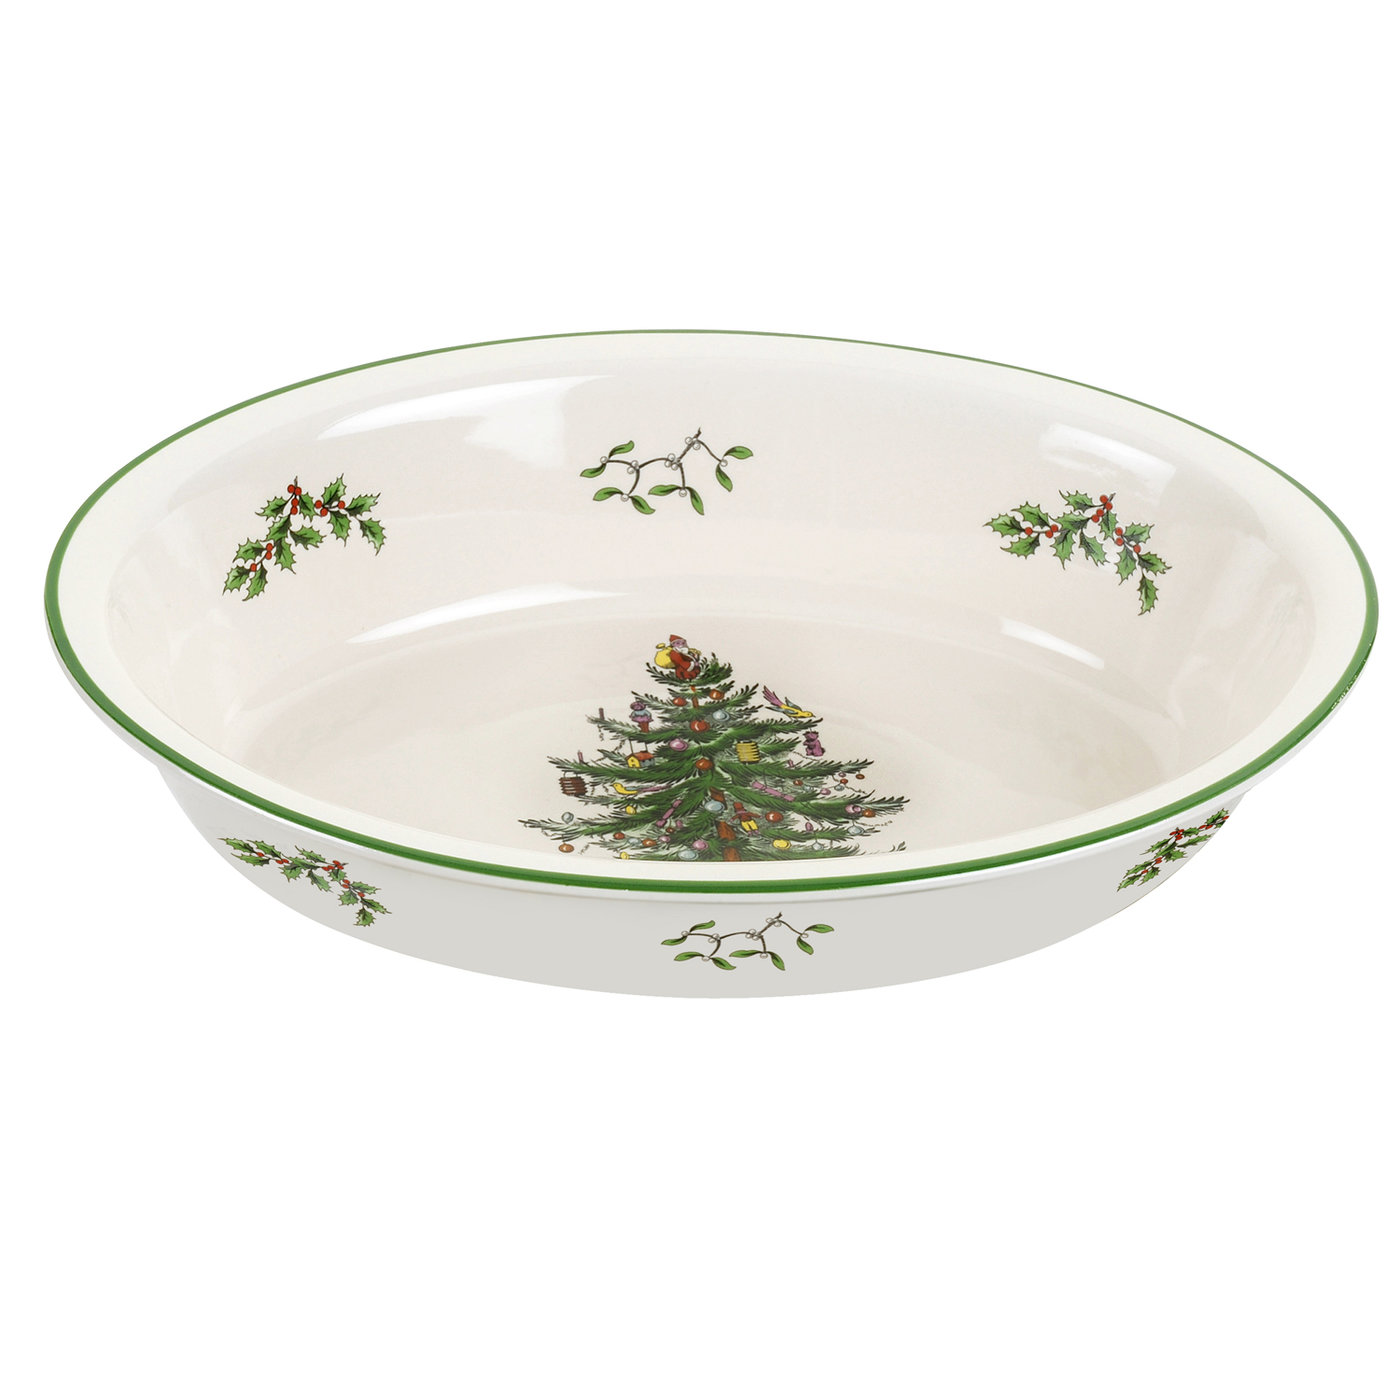 Spode Christmas Tree Oval Rim Dish image number 0